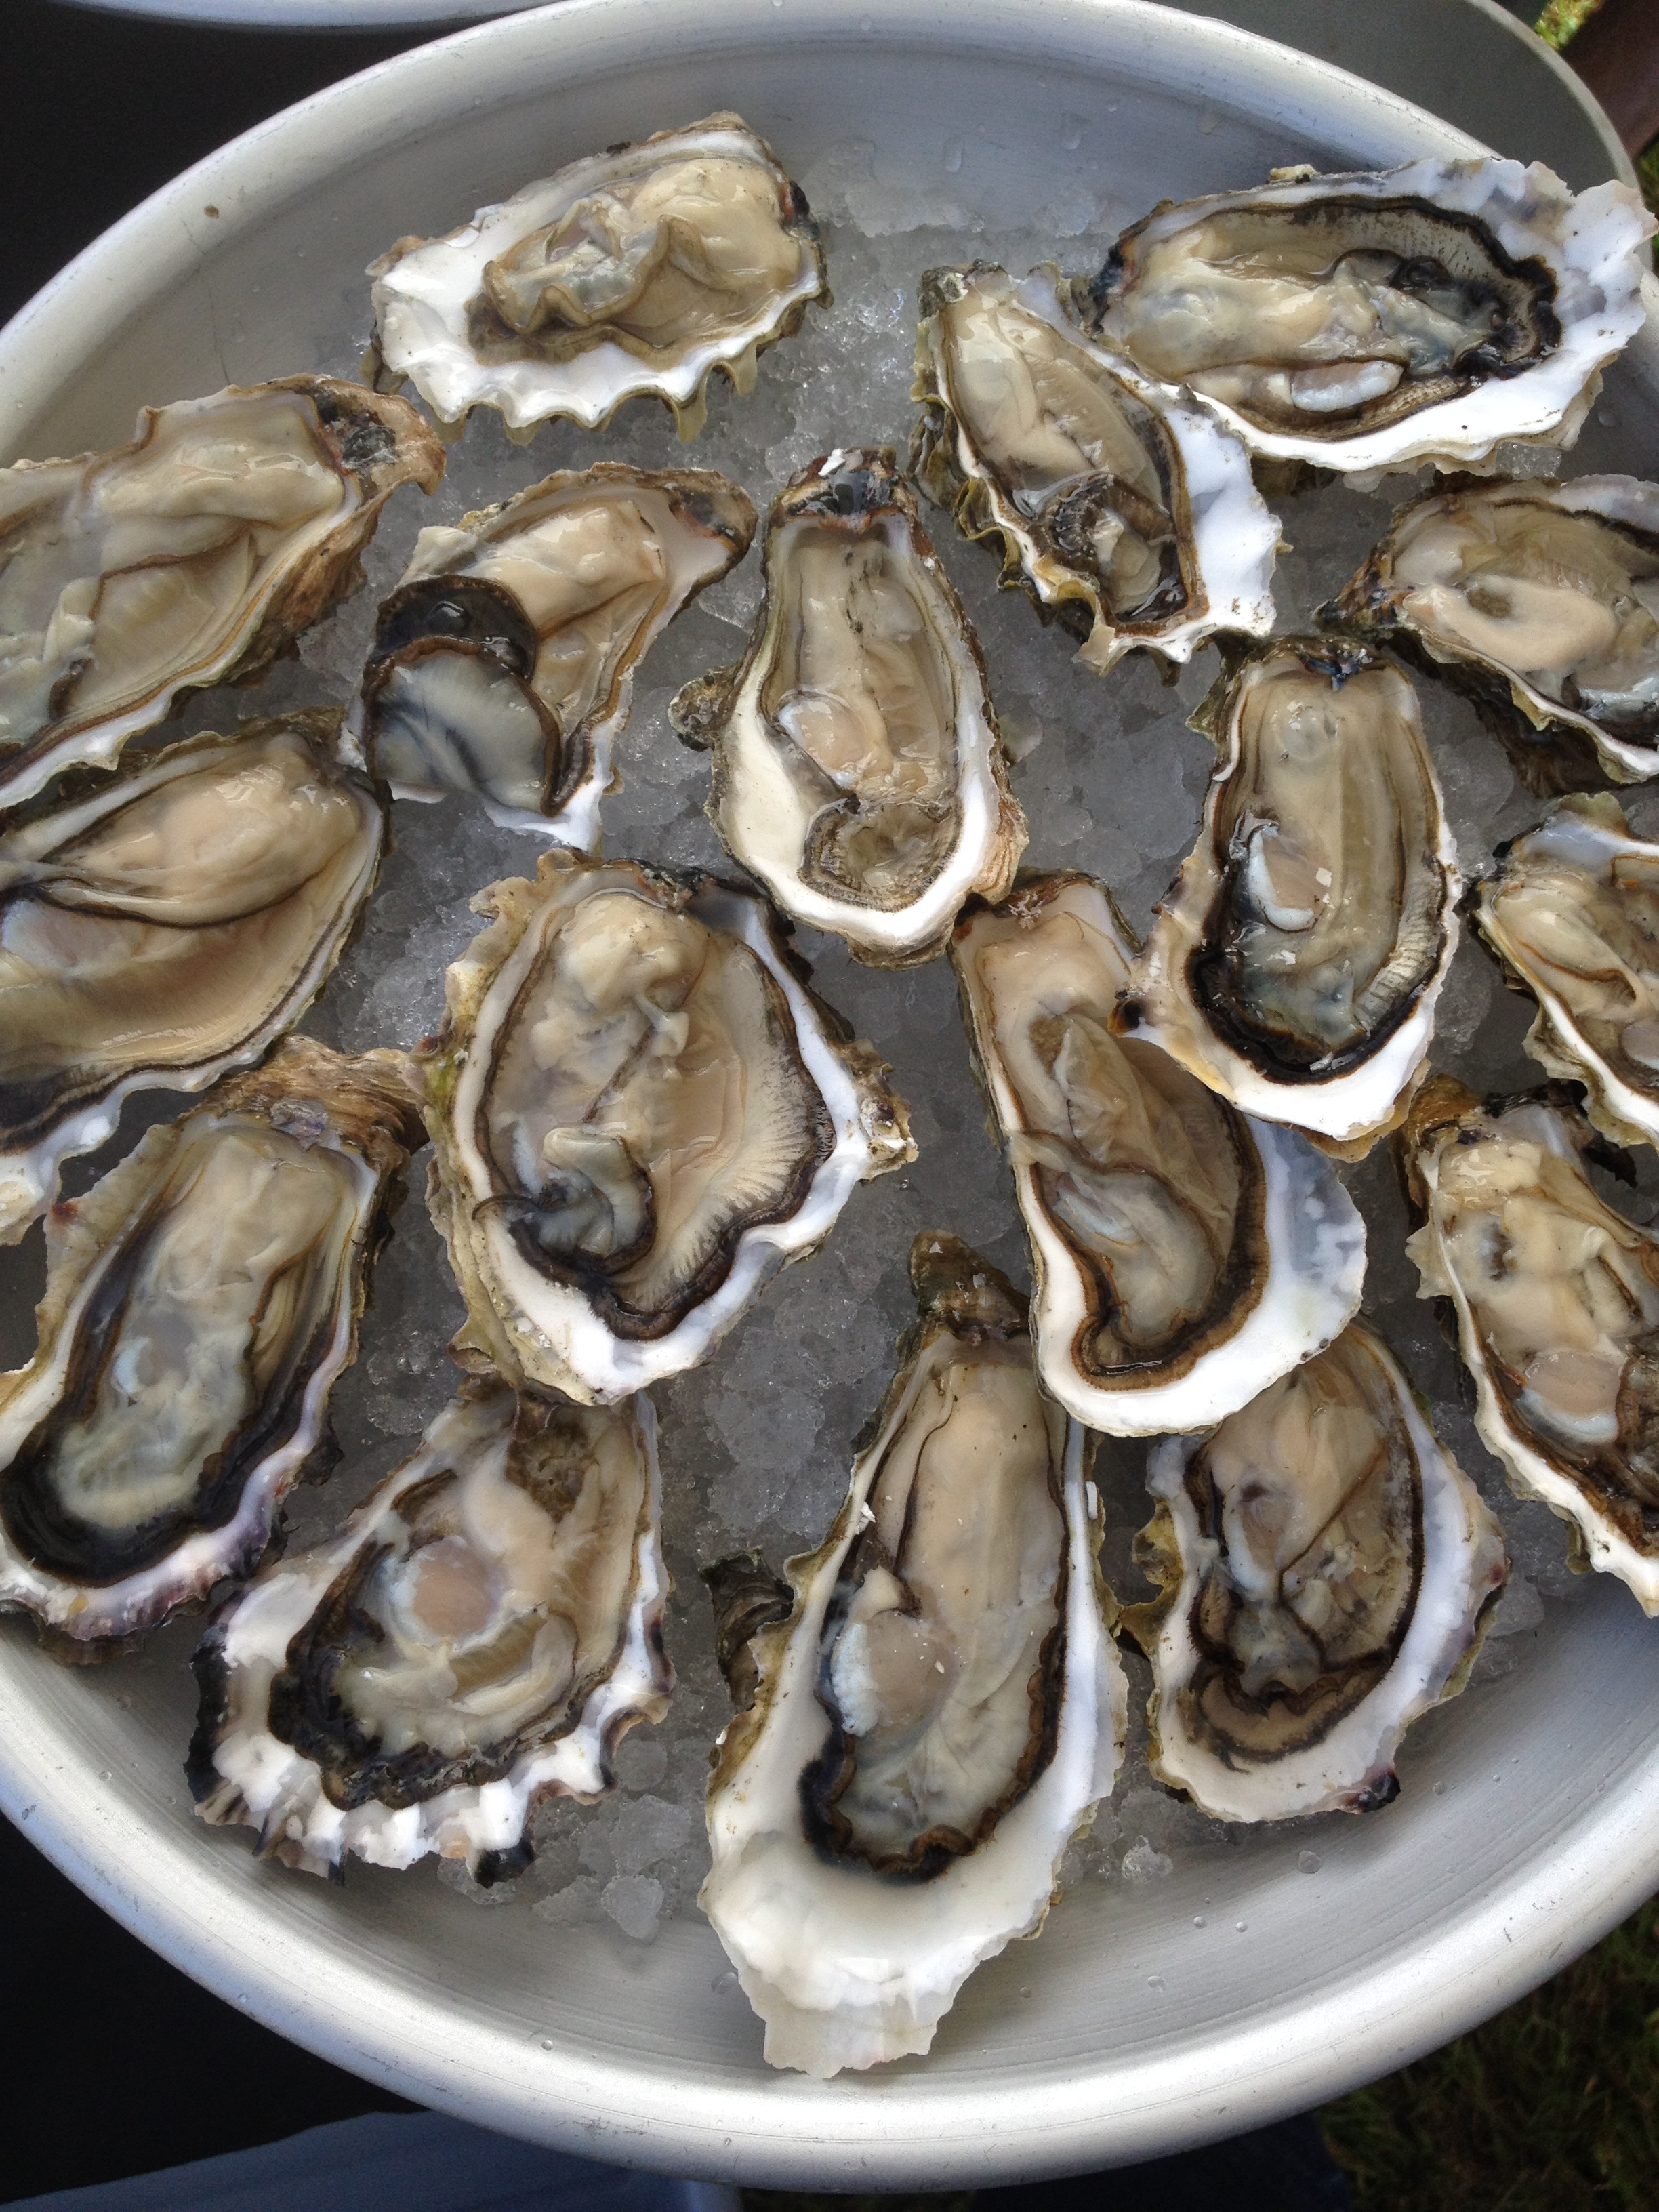 Freshly shucked oysters on the half shell from Hama Hama Oysters at Ballard Farmers Market. Copyright Lauren McCool.